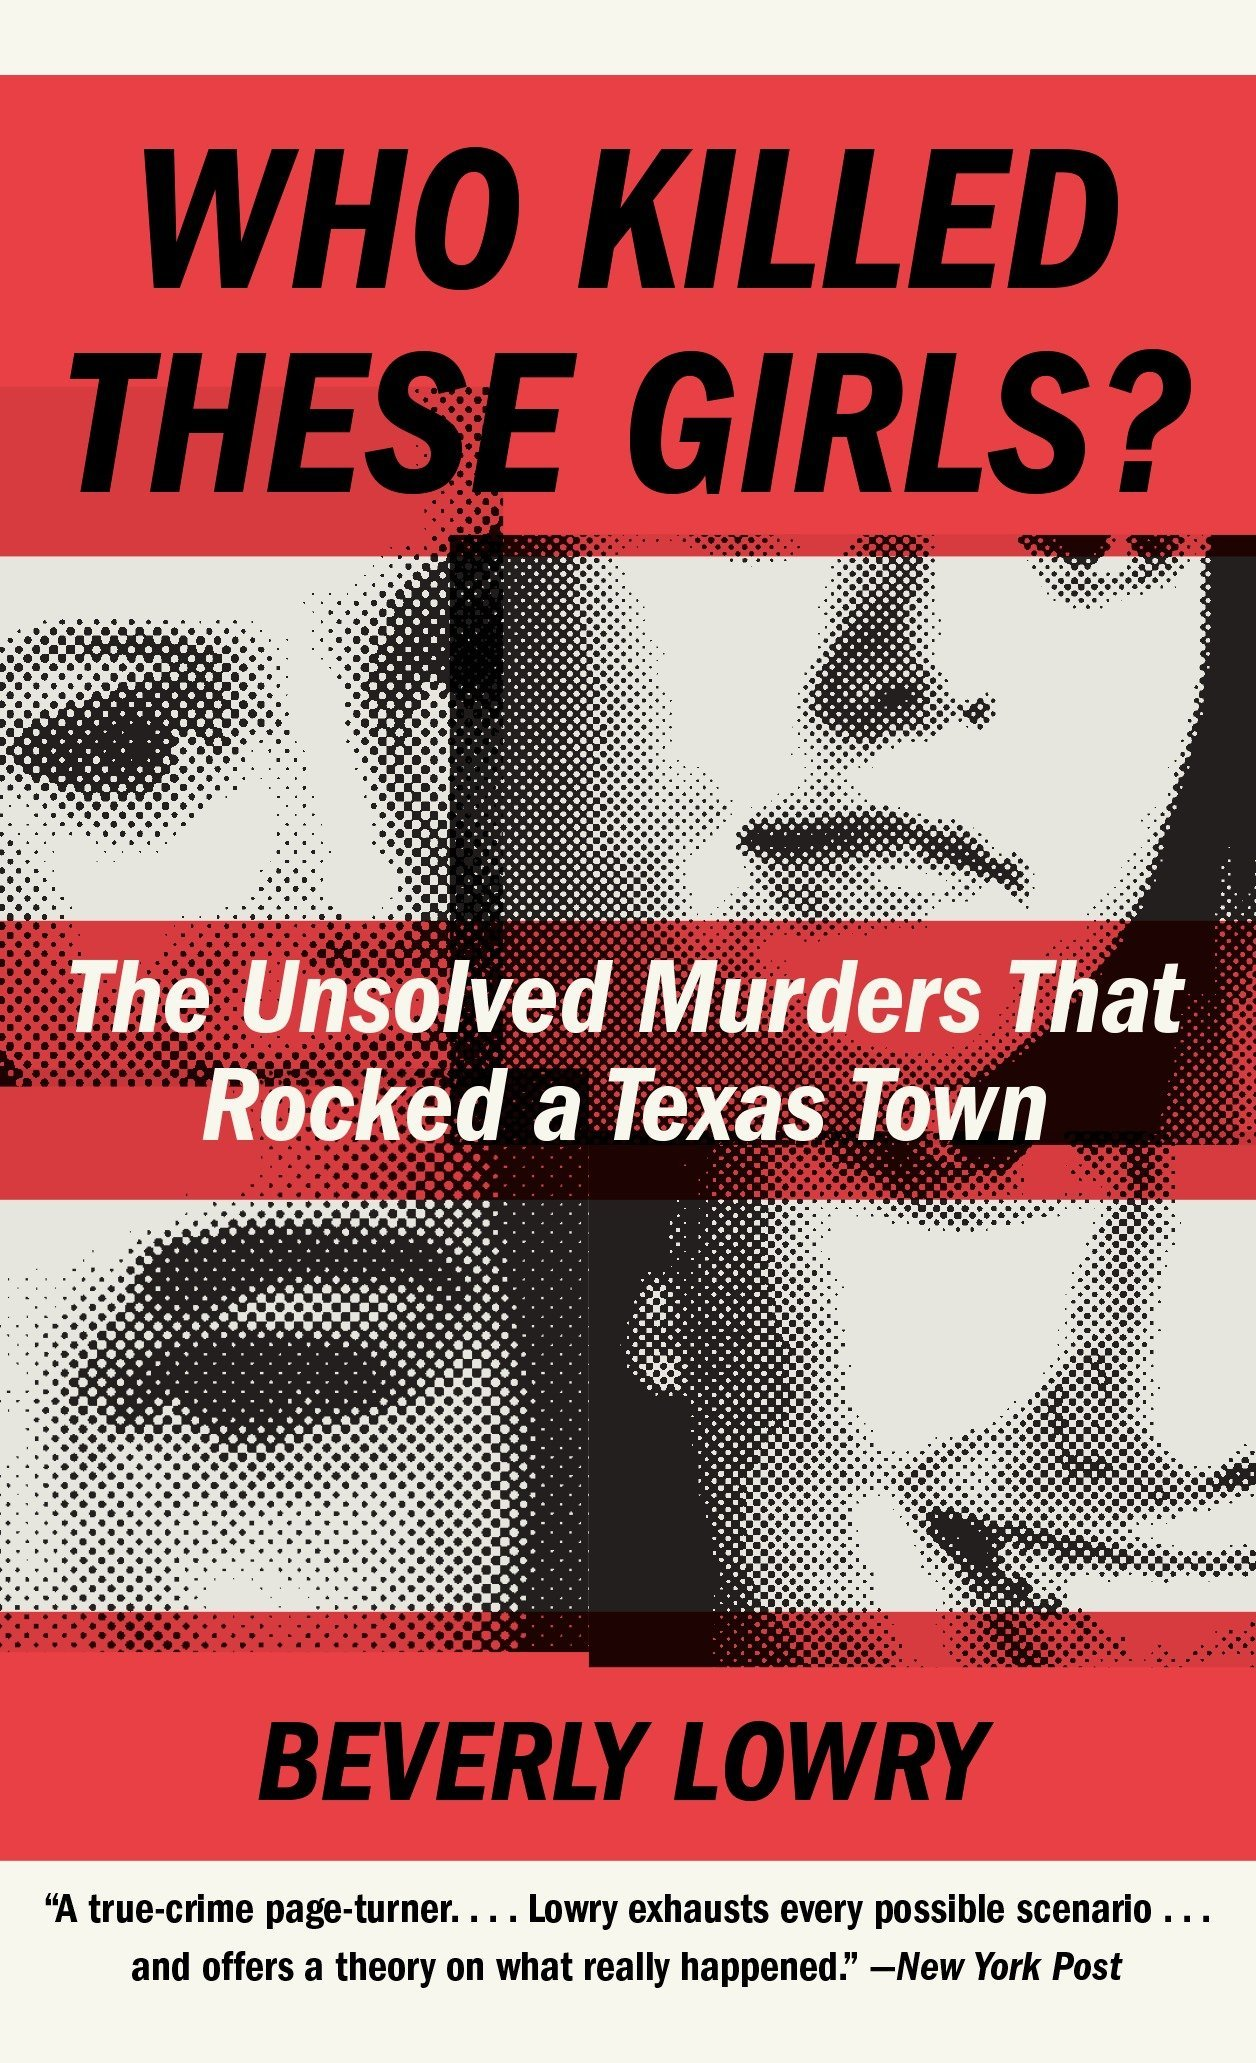 Who Killed These Girls?: The Unsolved Murders That Rocked a Texas